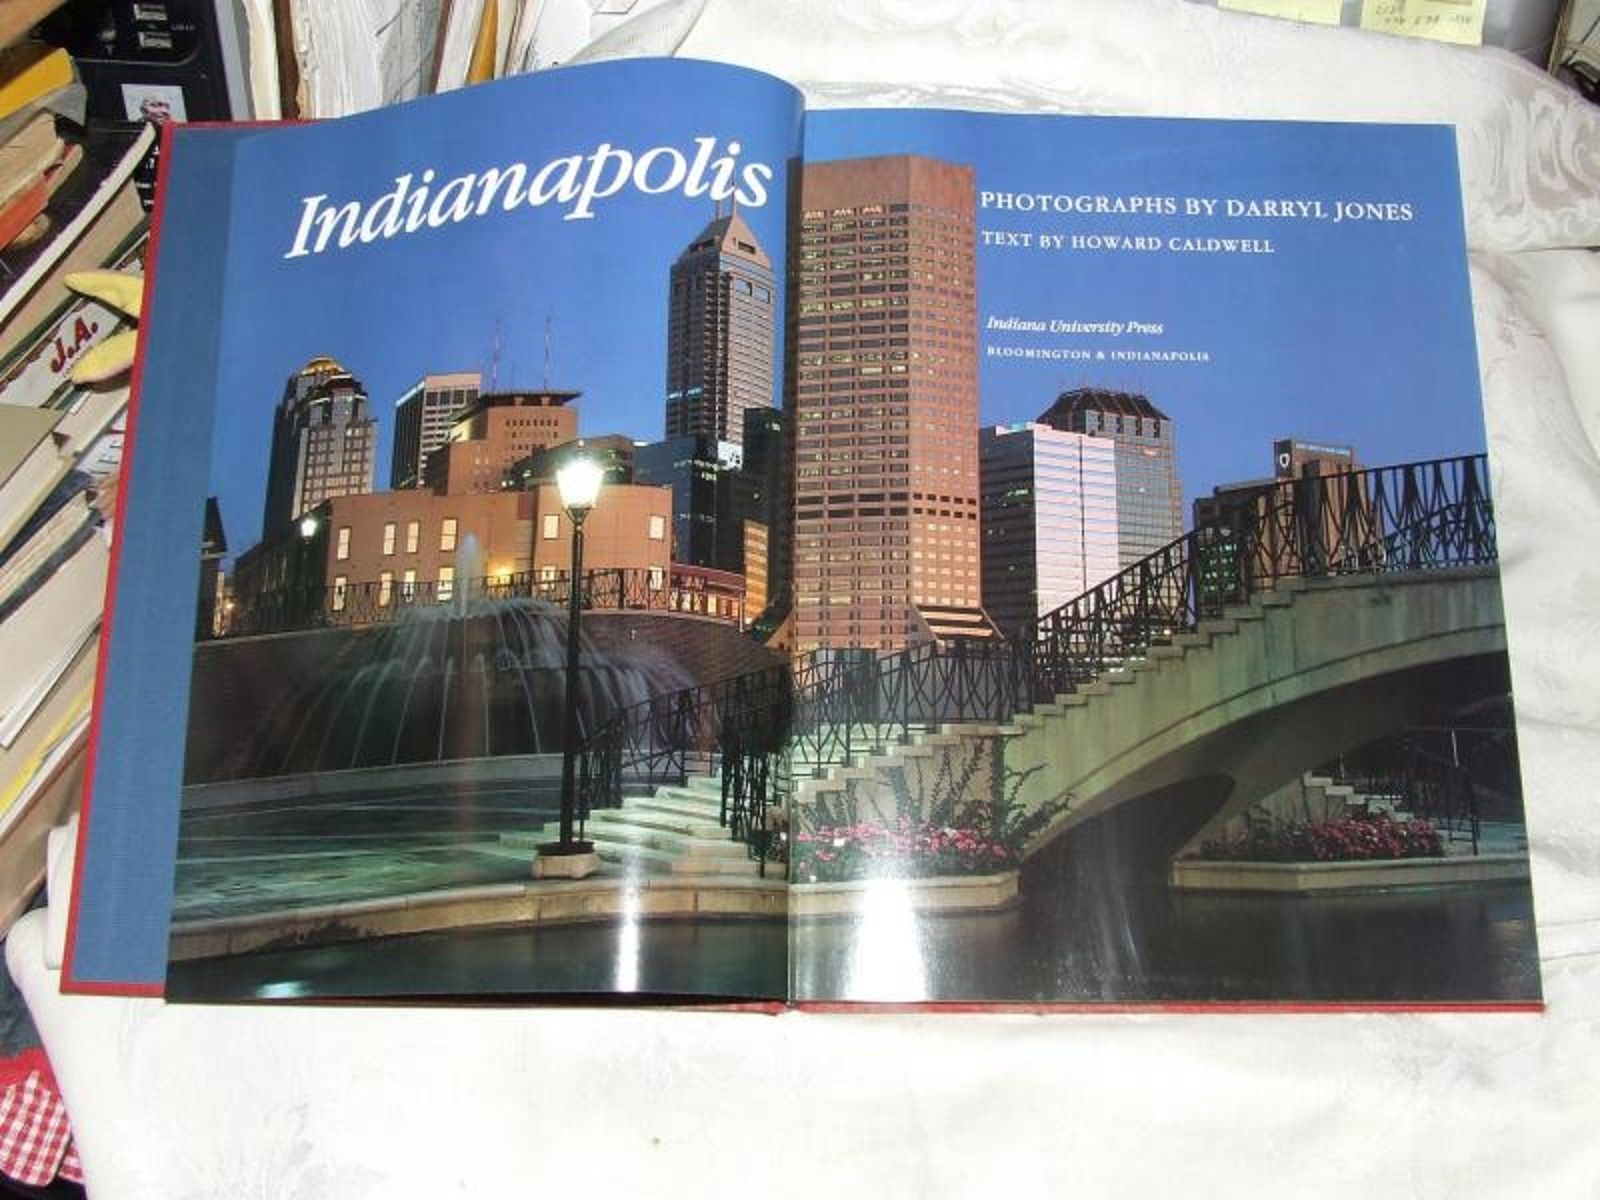 1990 INDIANAPOLIS Oversize Coffee Table Book Darryl Jones Howard Caldwell Photos